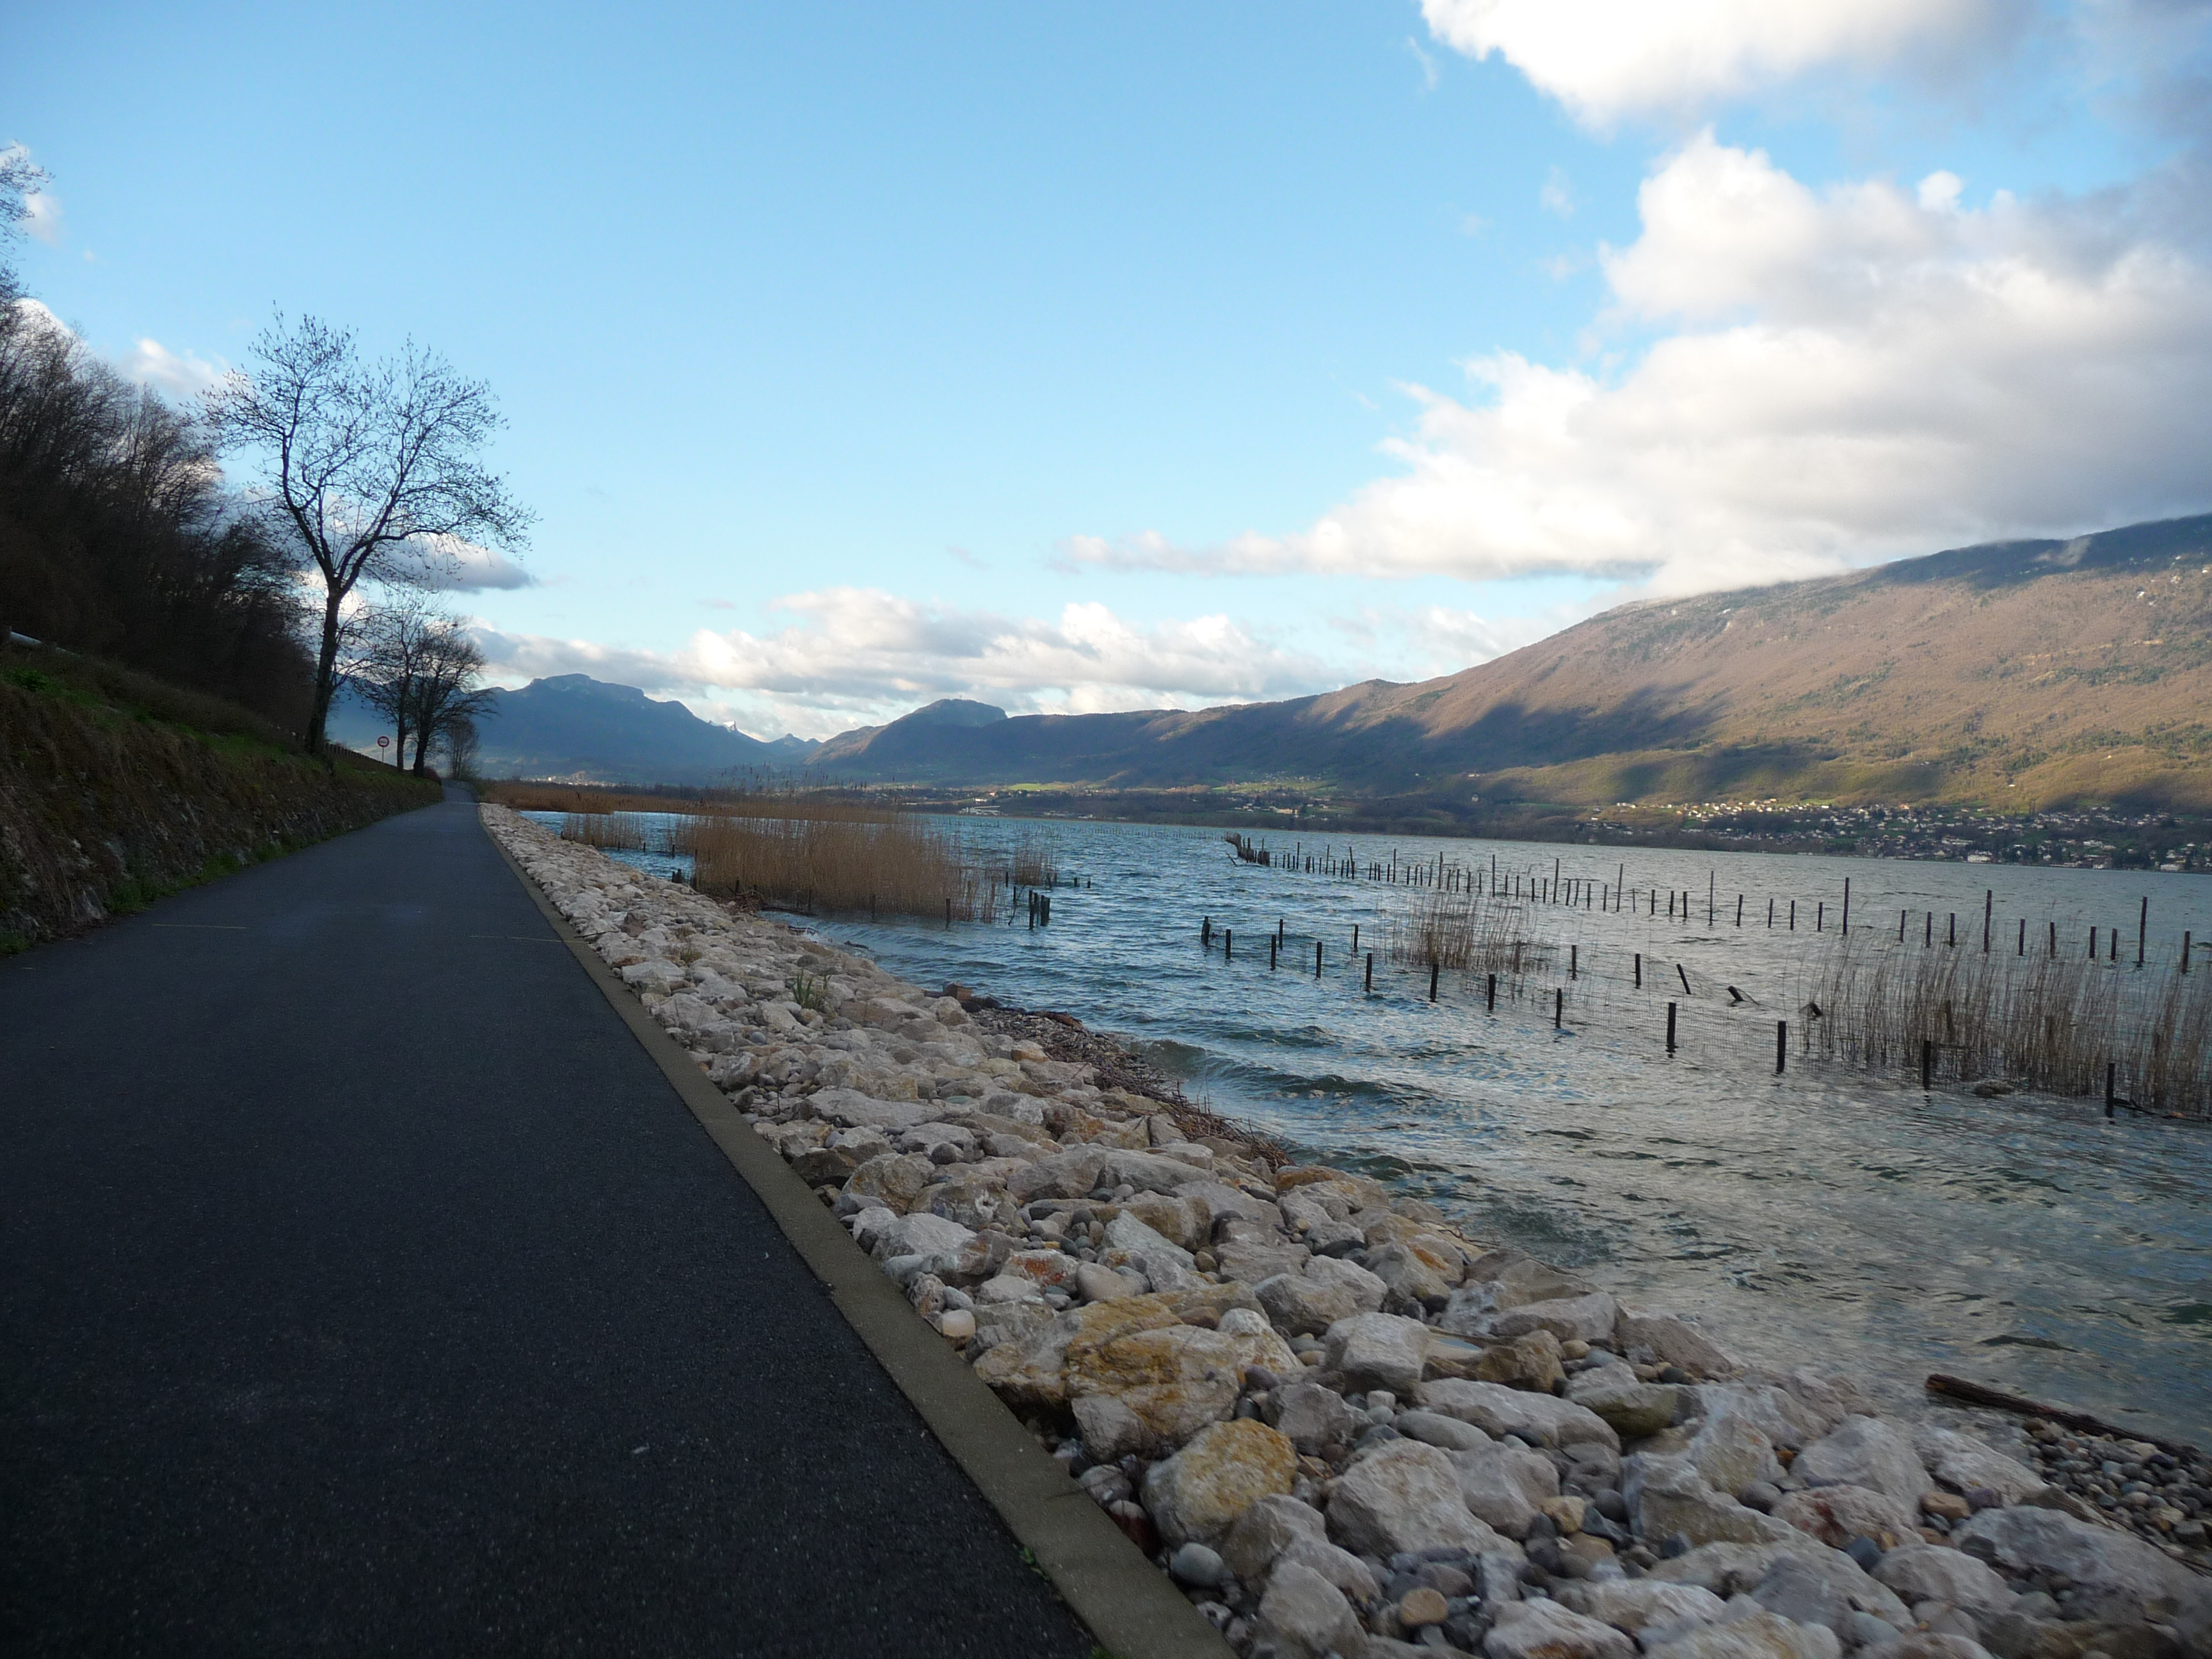 Cycling path along Lake Bourget